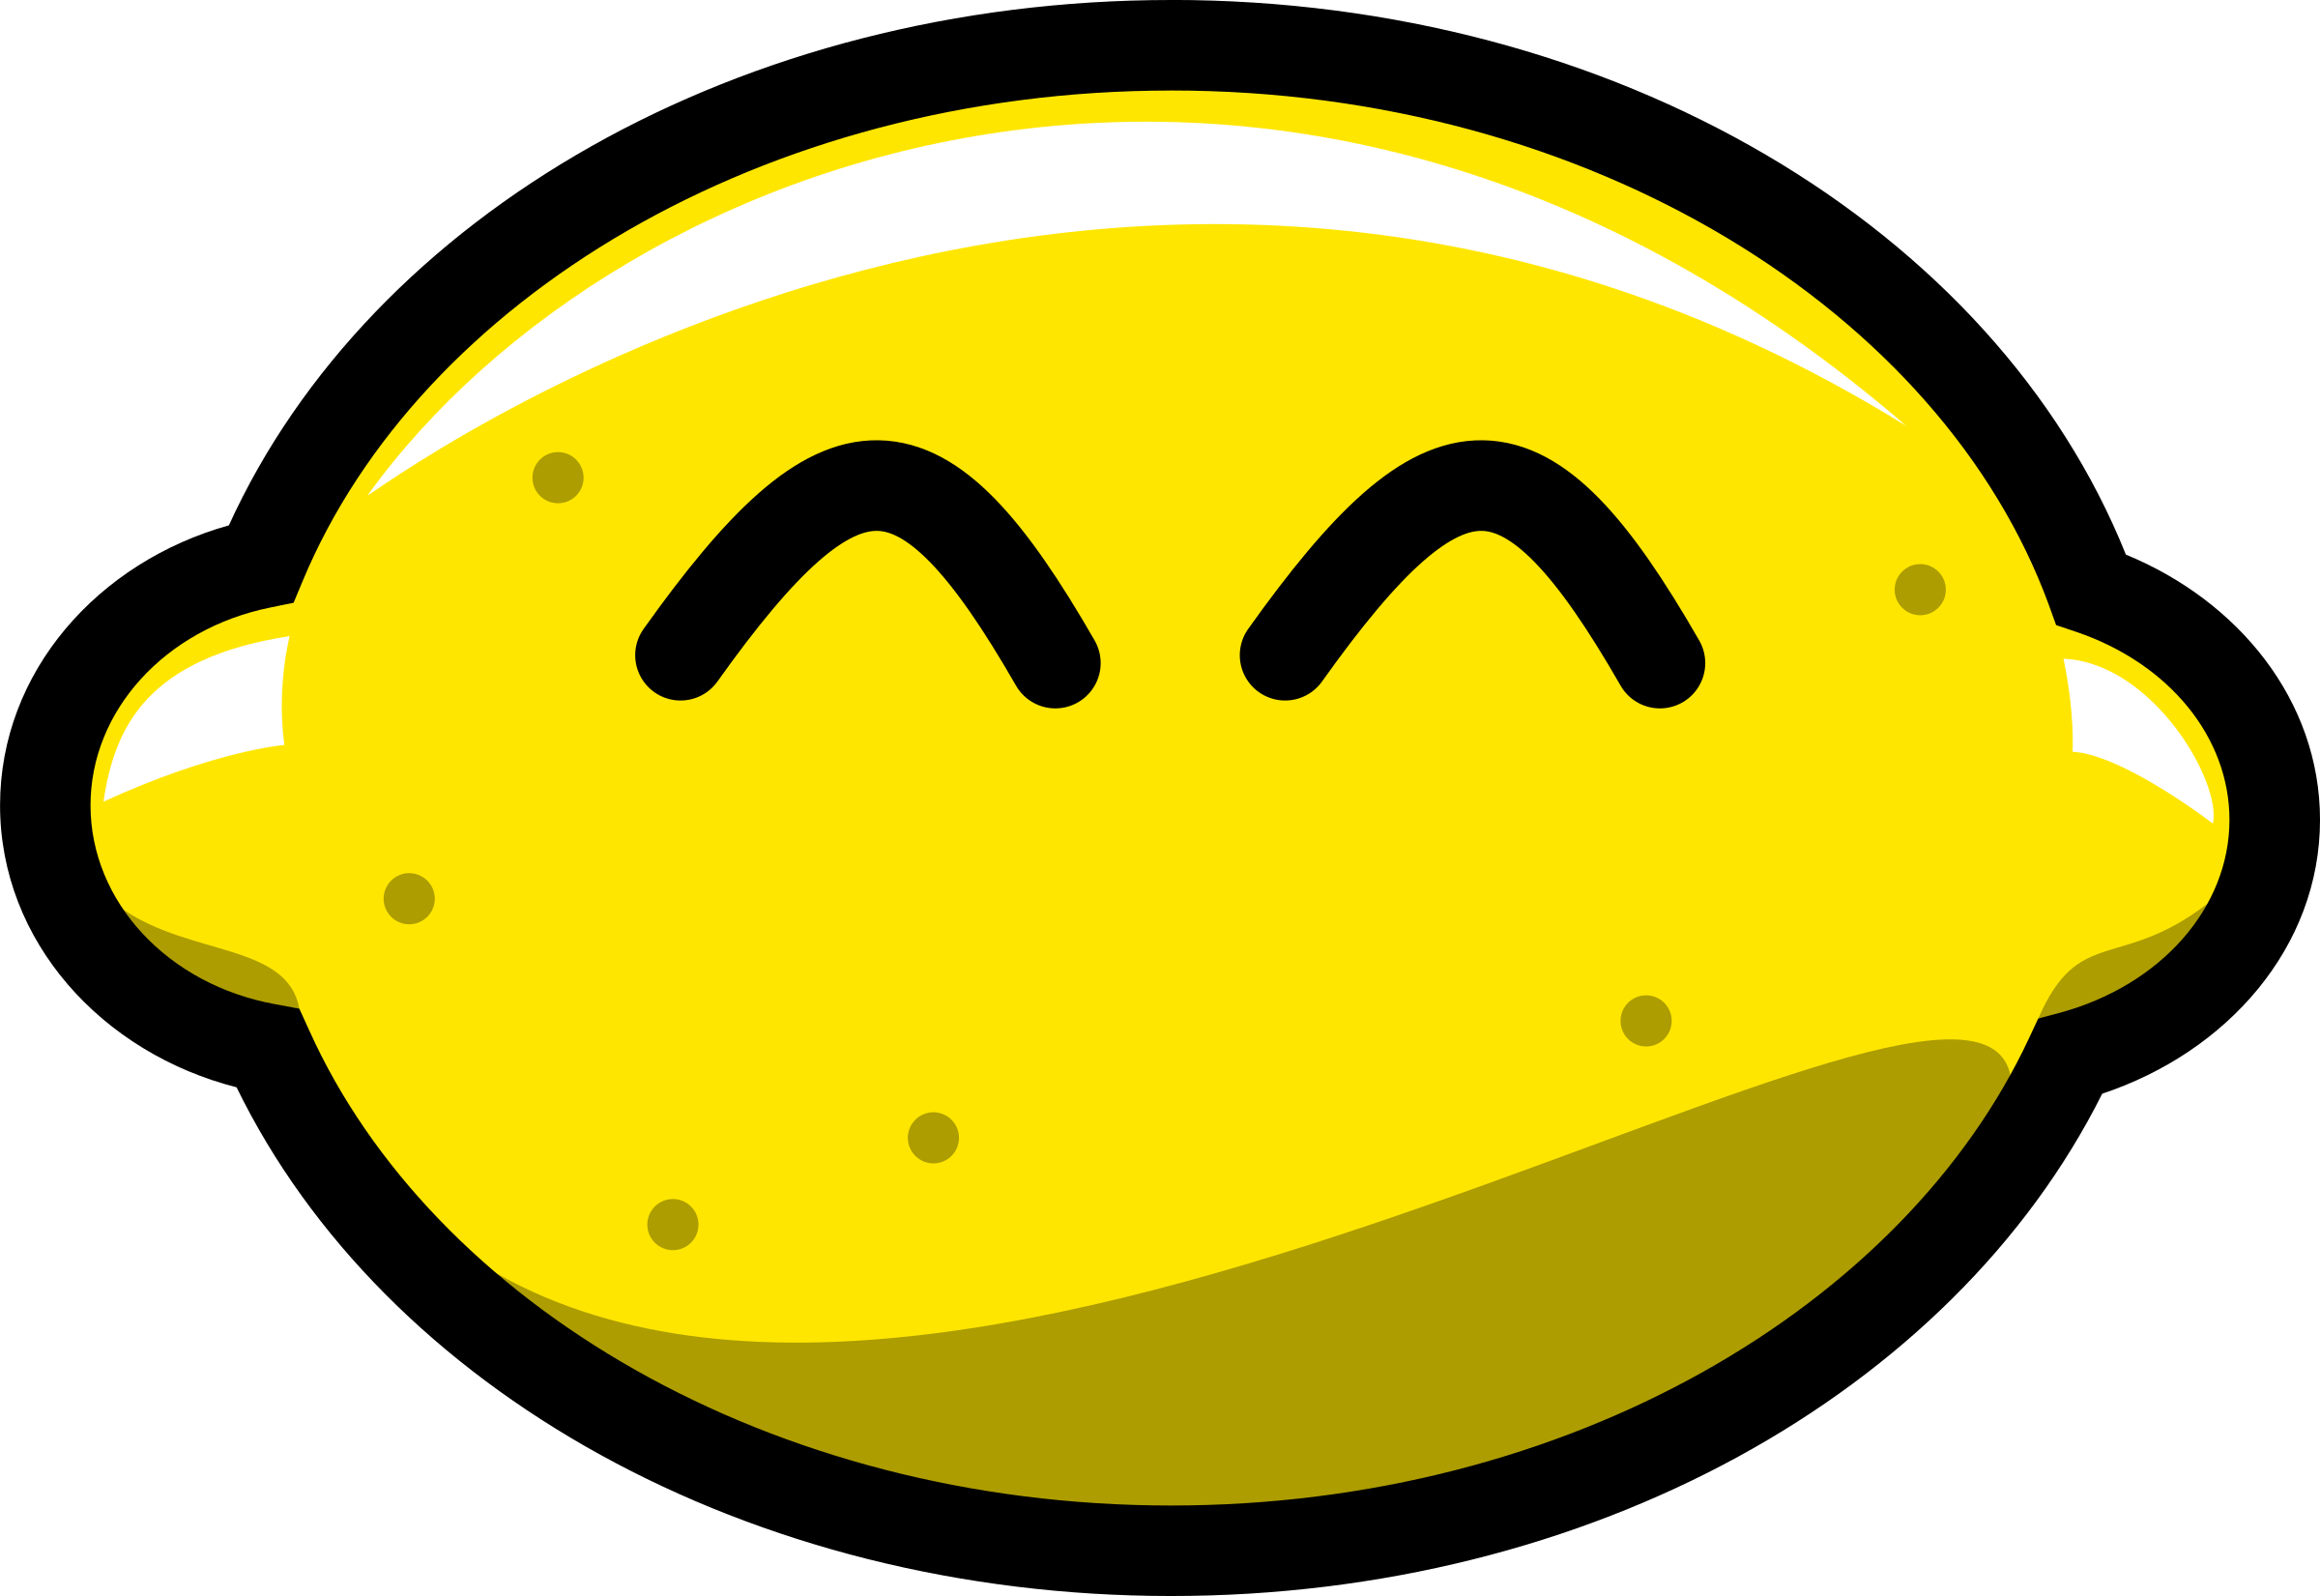 HappyLemon-v1.9-fit.png